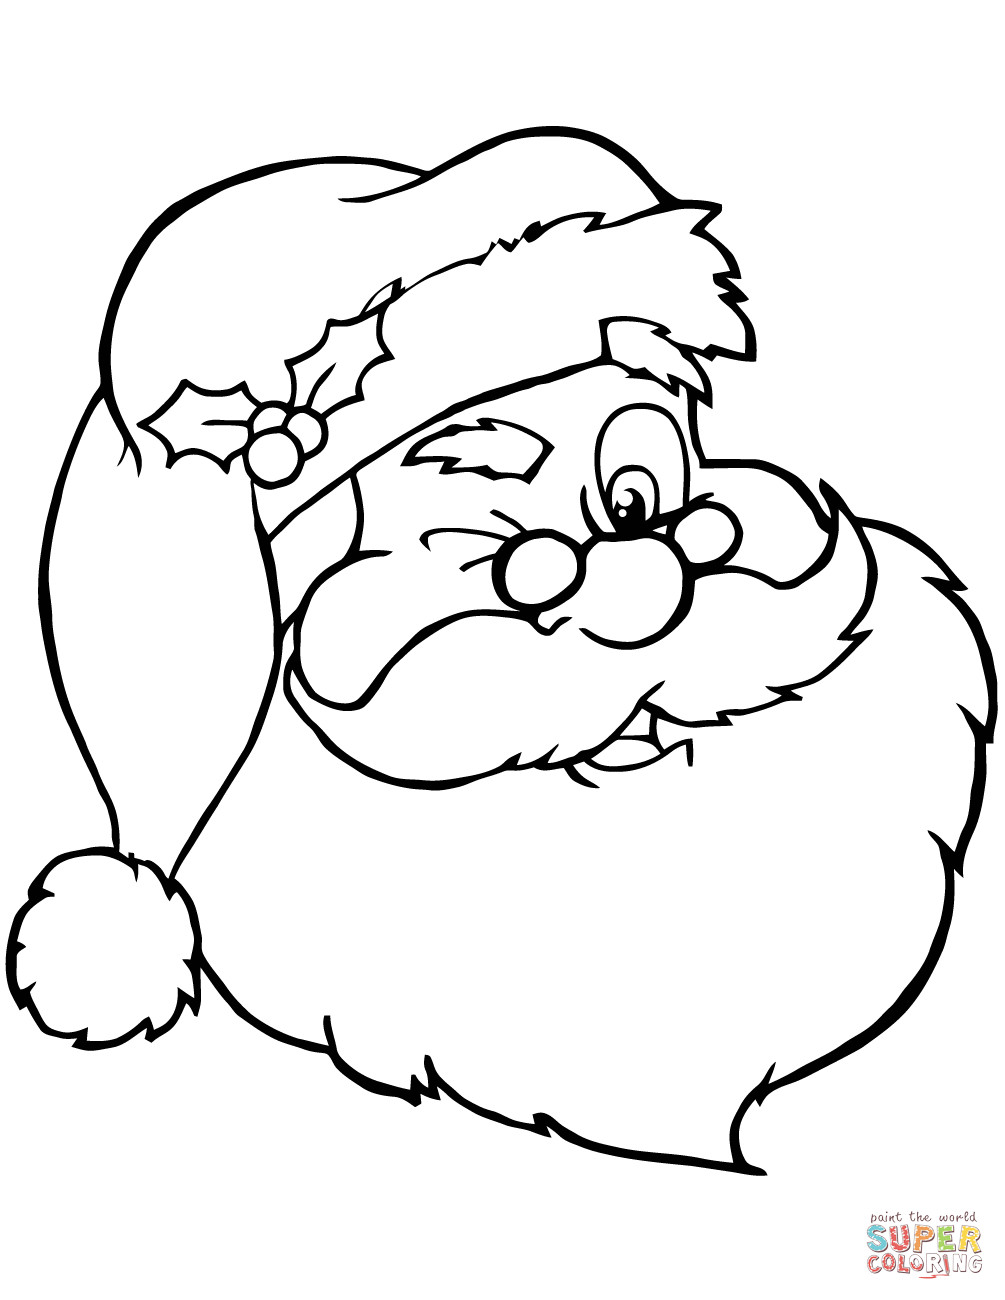 1005x1300 Reindeer Face Coloring Pages Bltidm Remarkable Page Acpra